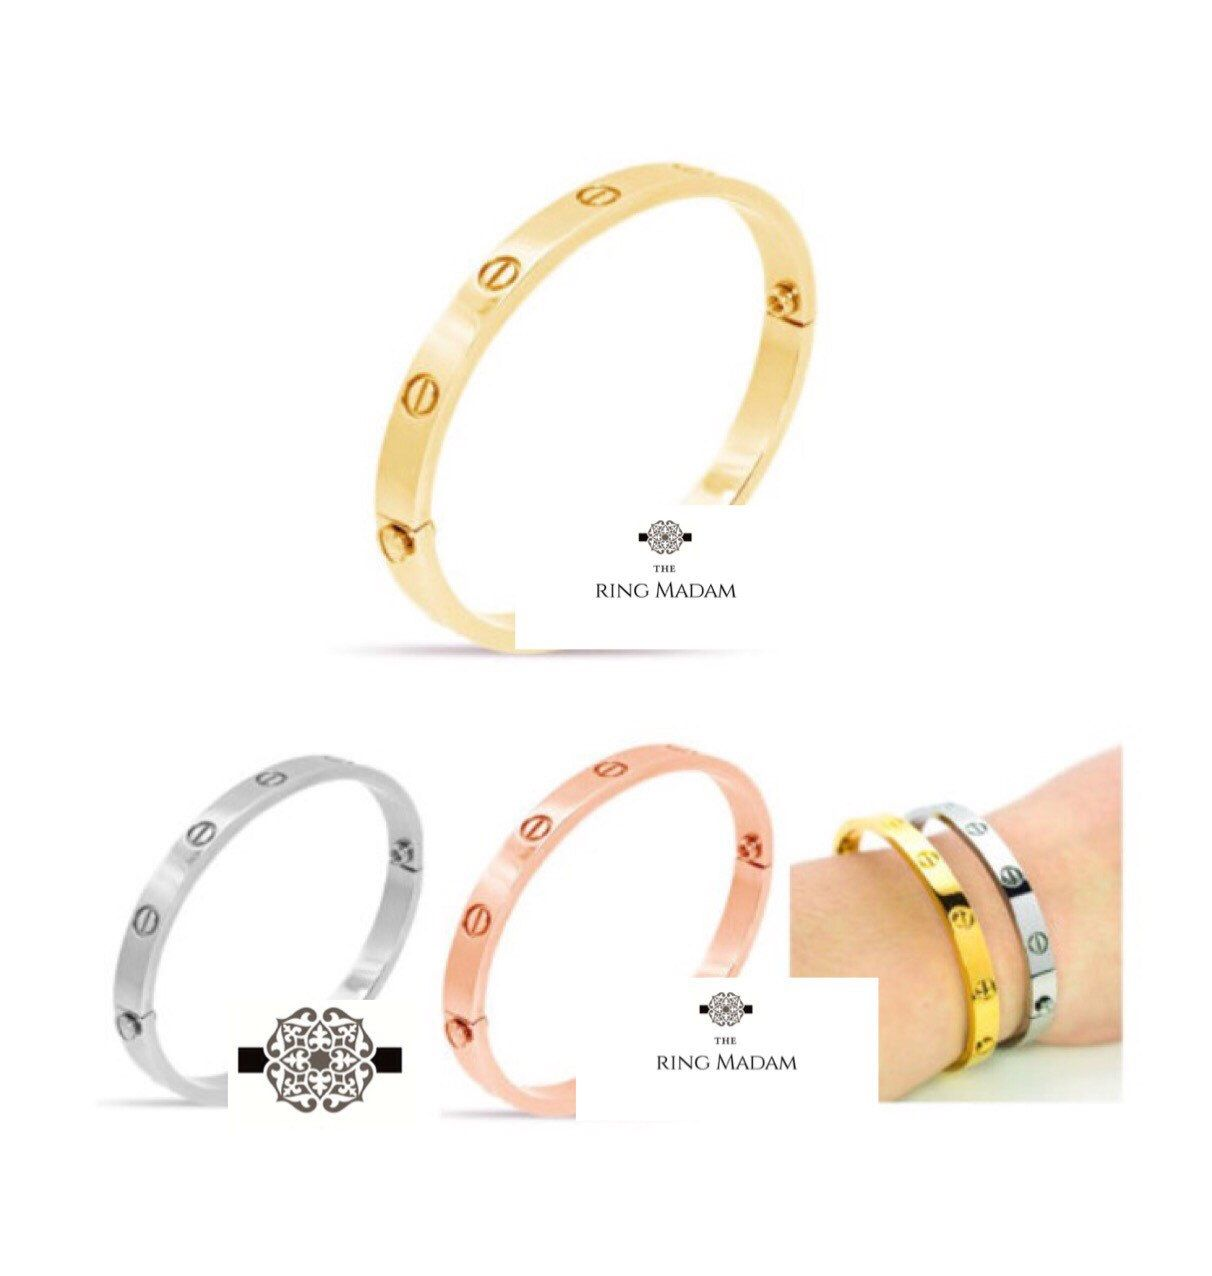 gold bangles size wscrewdriver white screwdriver i paper cartier and motifs love w bracelet screw bangle